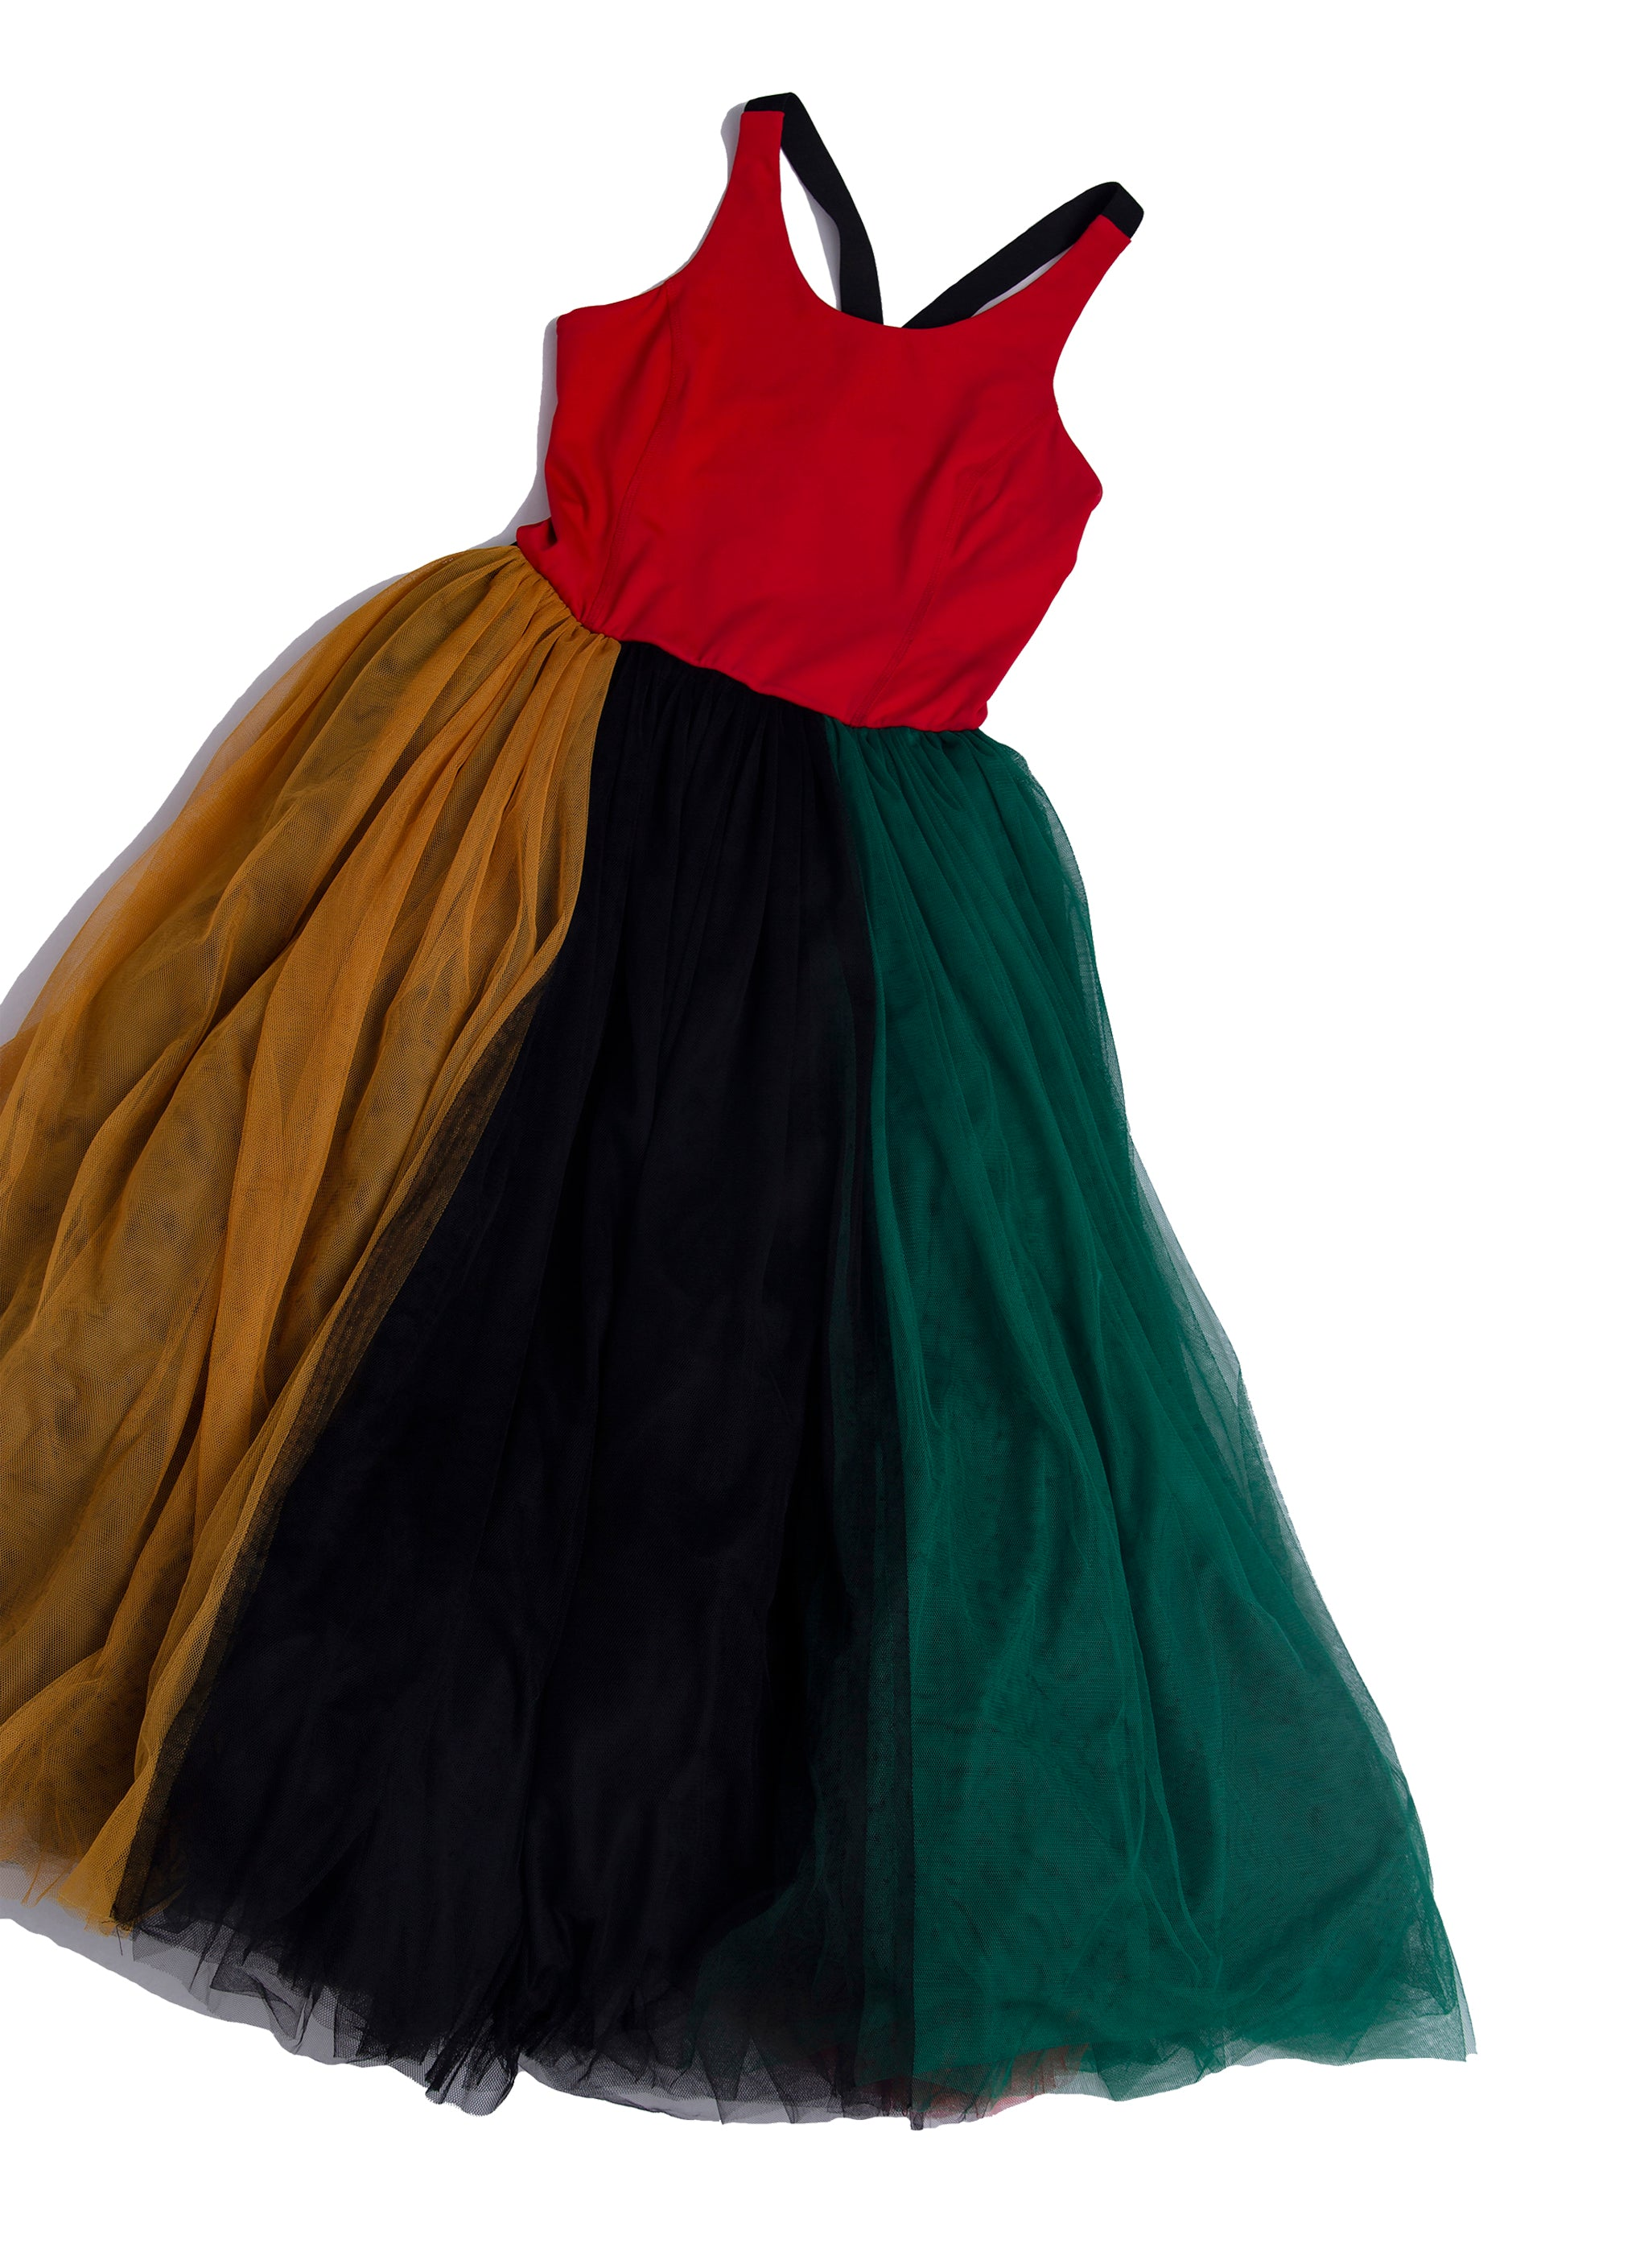 Runner tulle dress